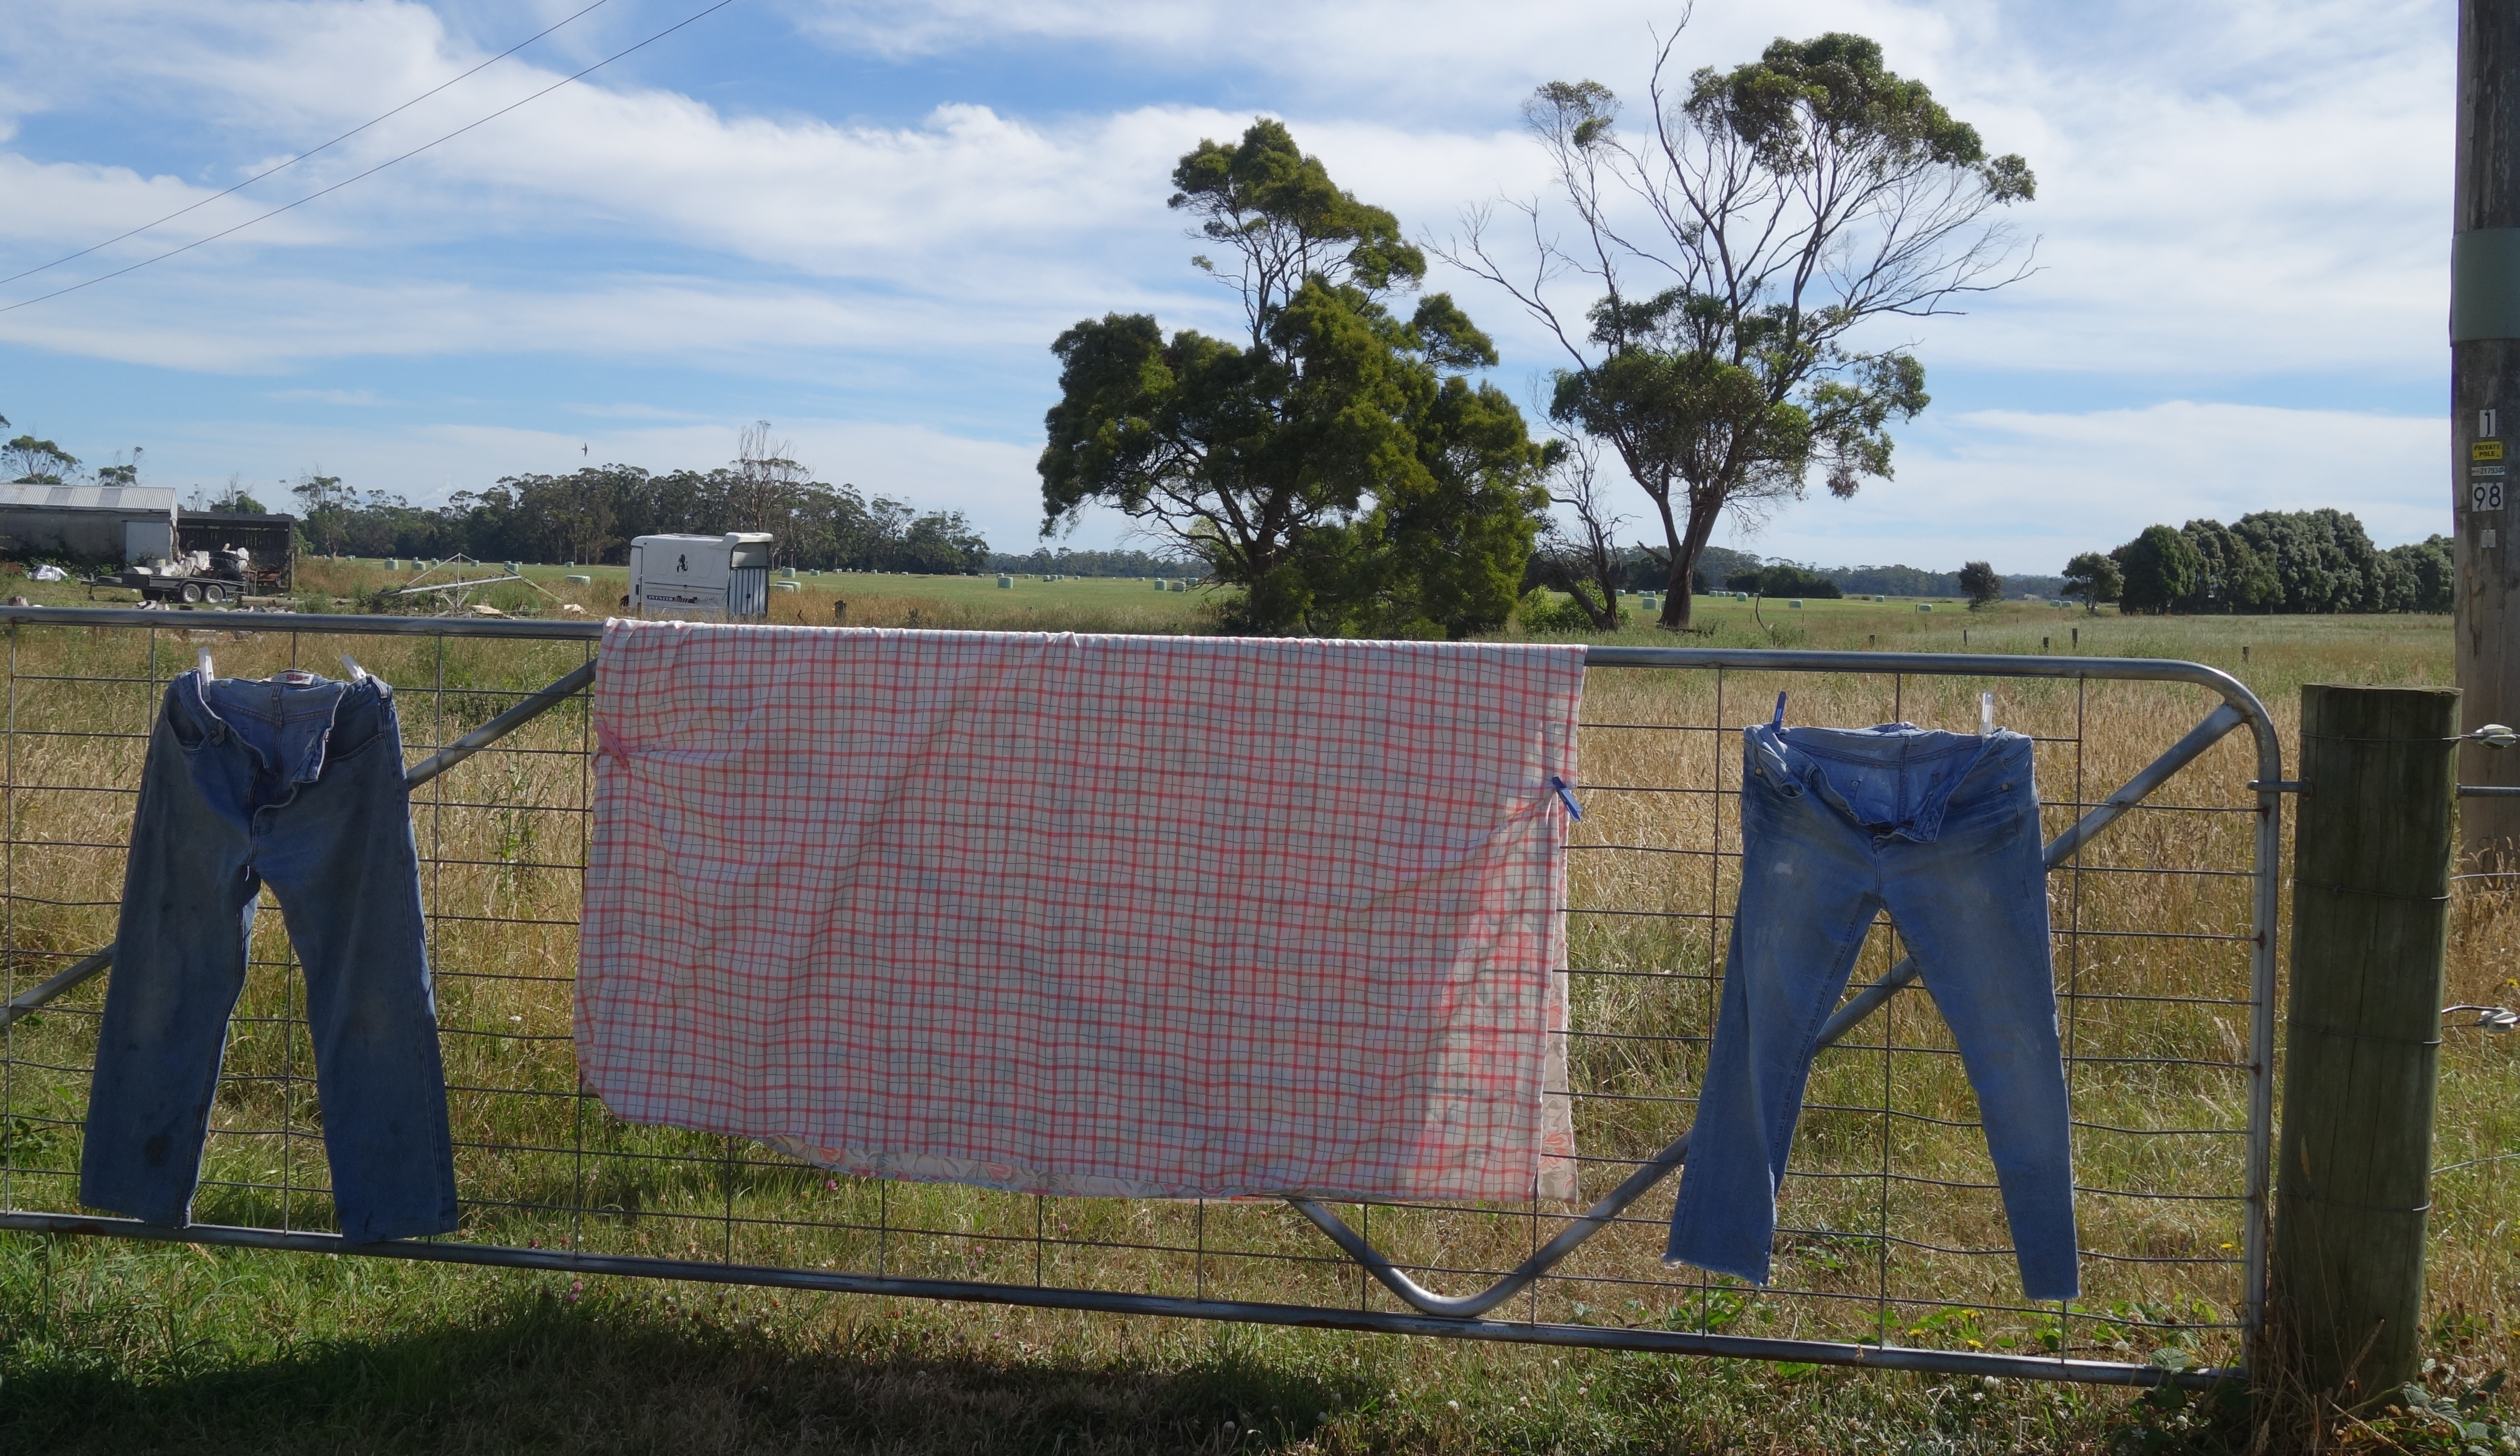 Two pairs of jeans and a sheet drying on a farm gate